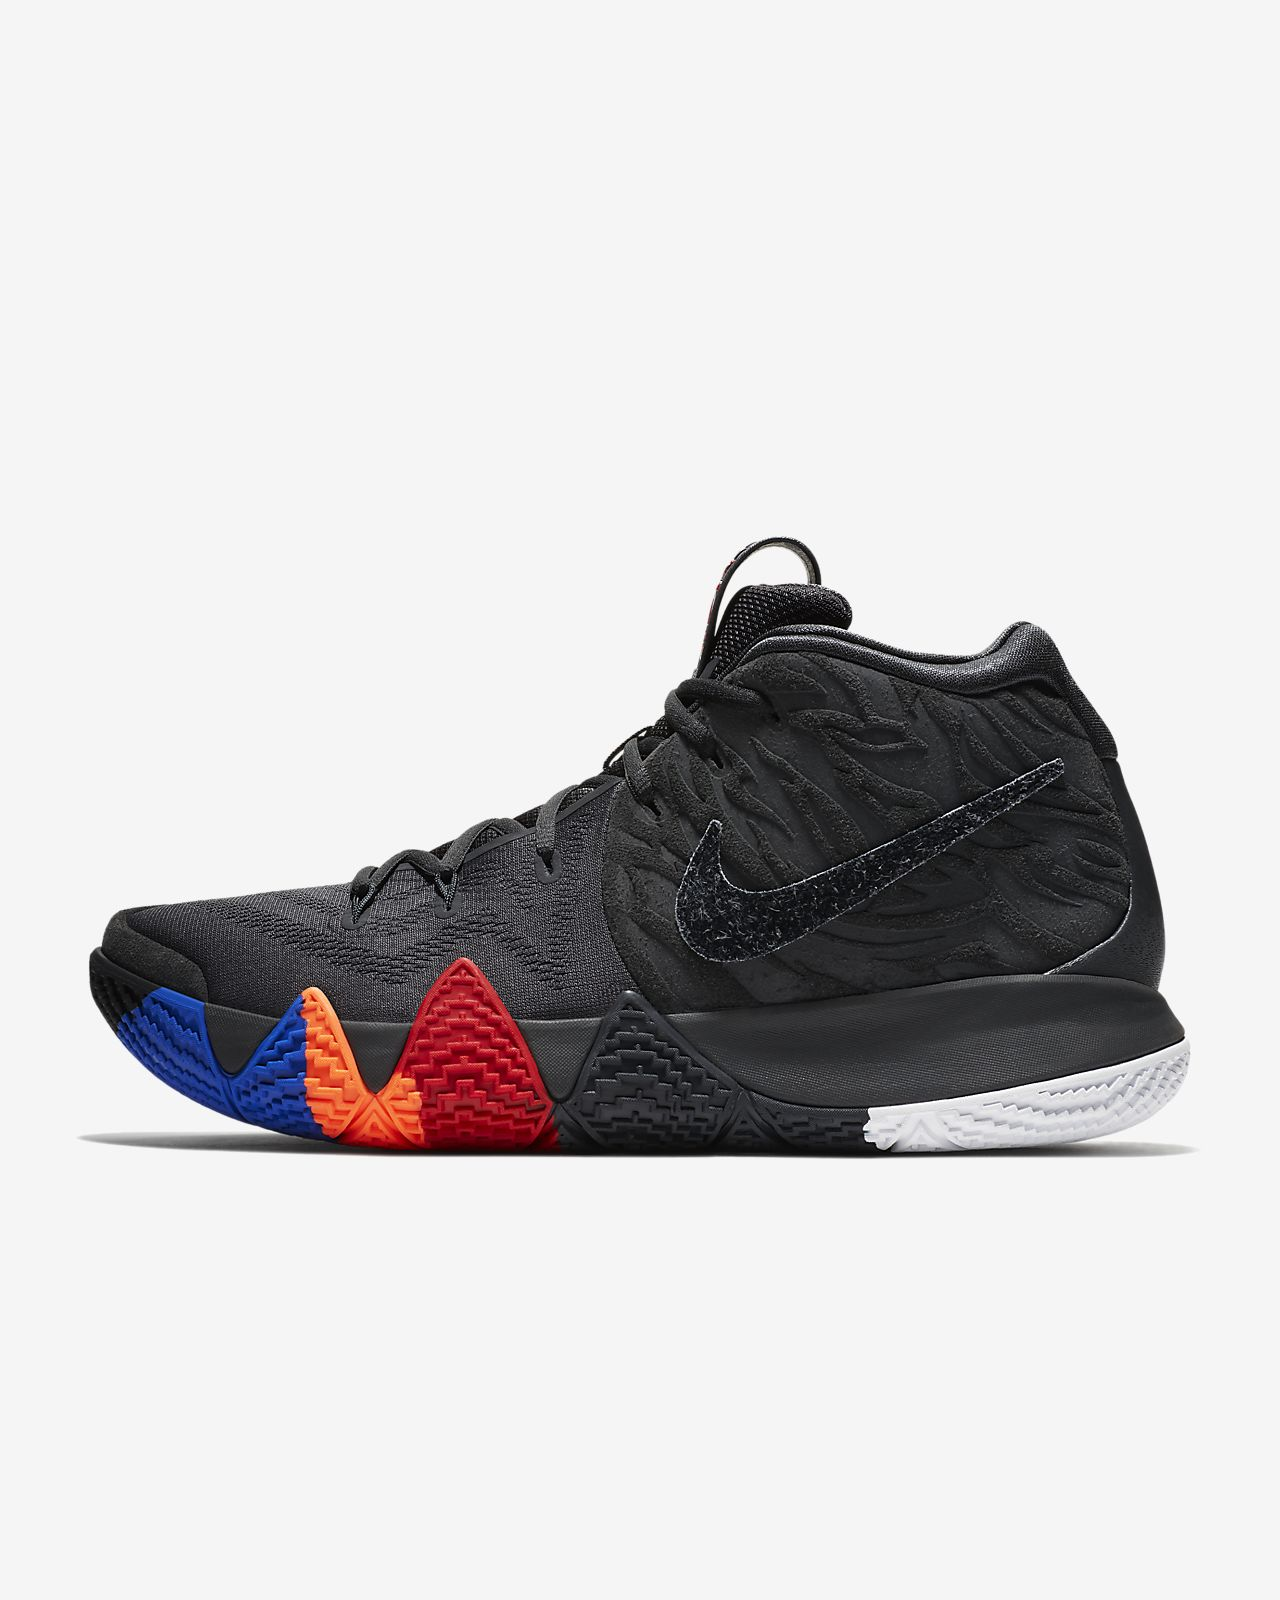 34672a215ca Low Resolution Kyrie 4 Basketball Shoe Kyrie 4 Basketball Shoe